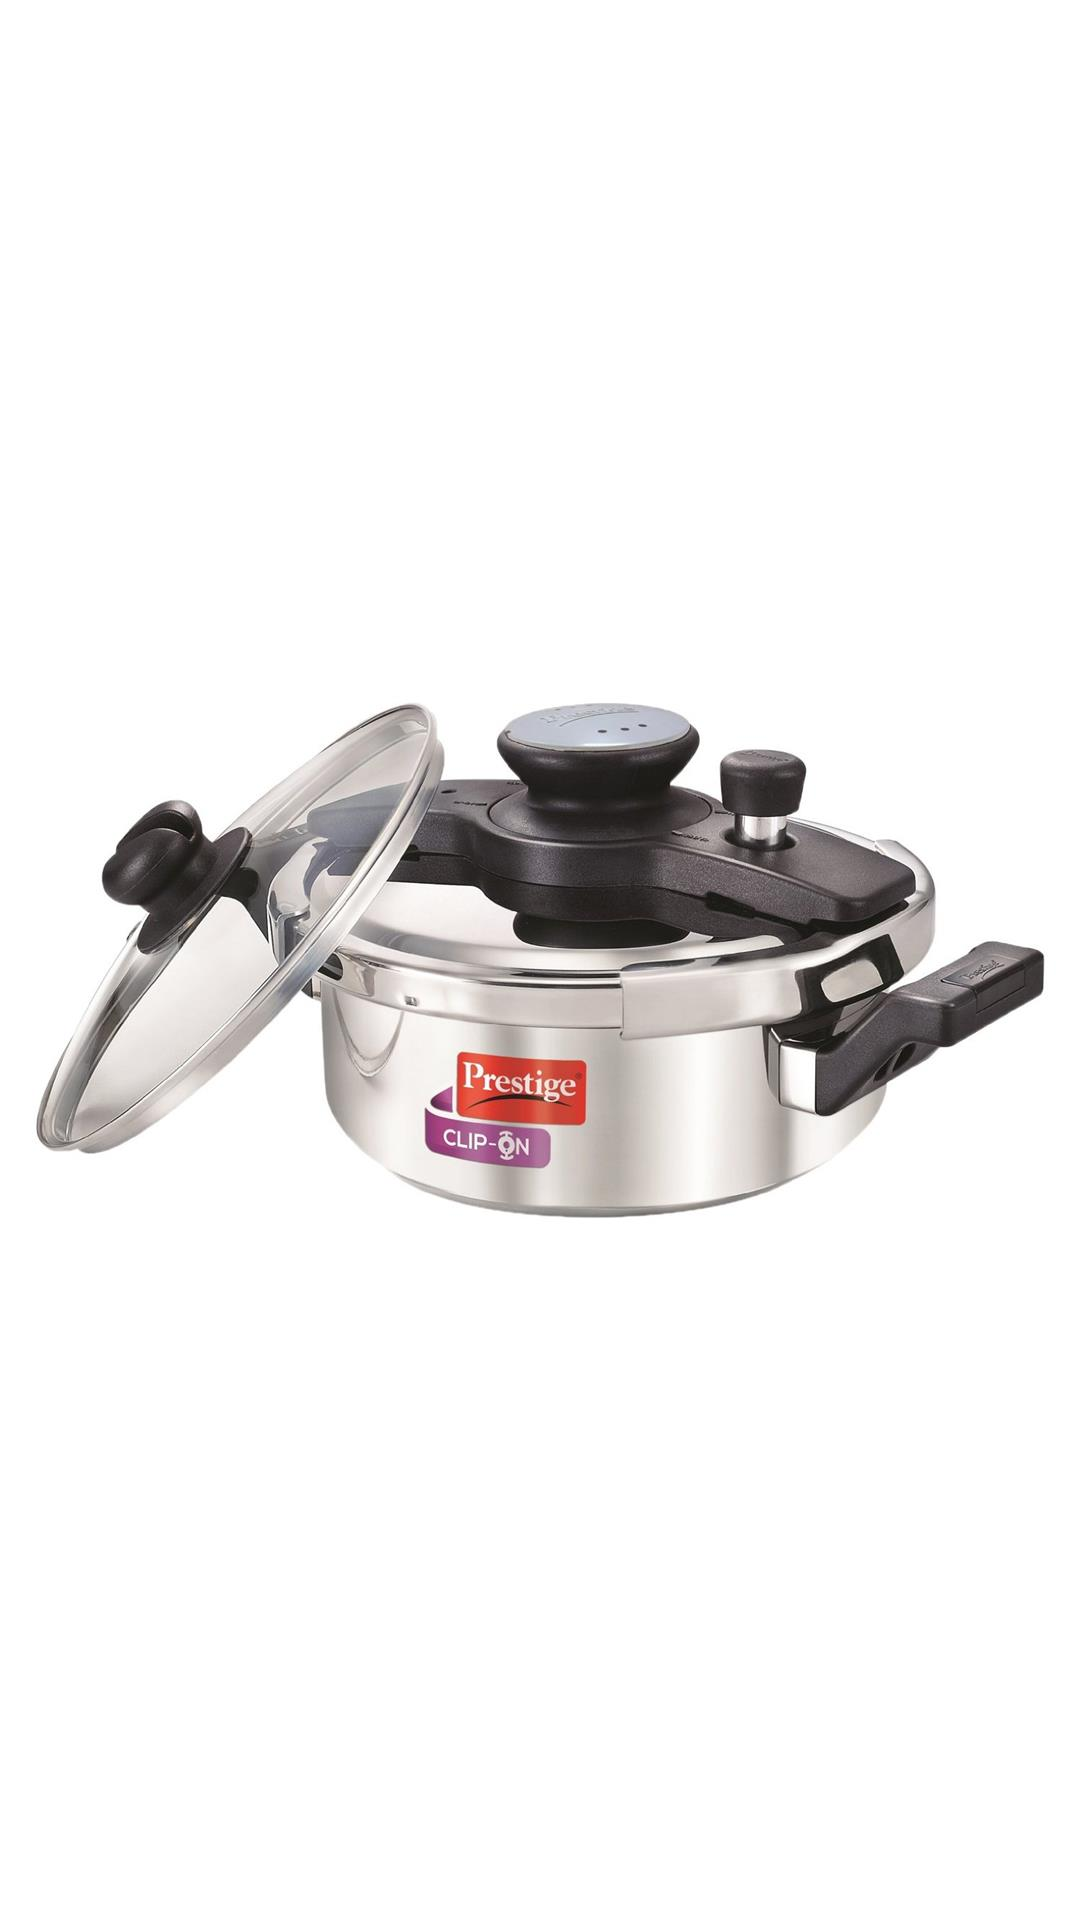 Prestige Clip On Aluminium Pressure Cooker with Glass Lid, 3 Litres, 2-Pieces, Metallic Steel